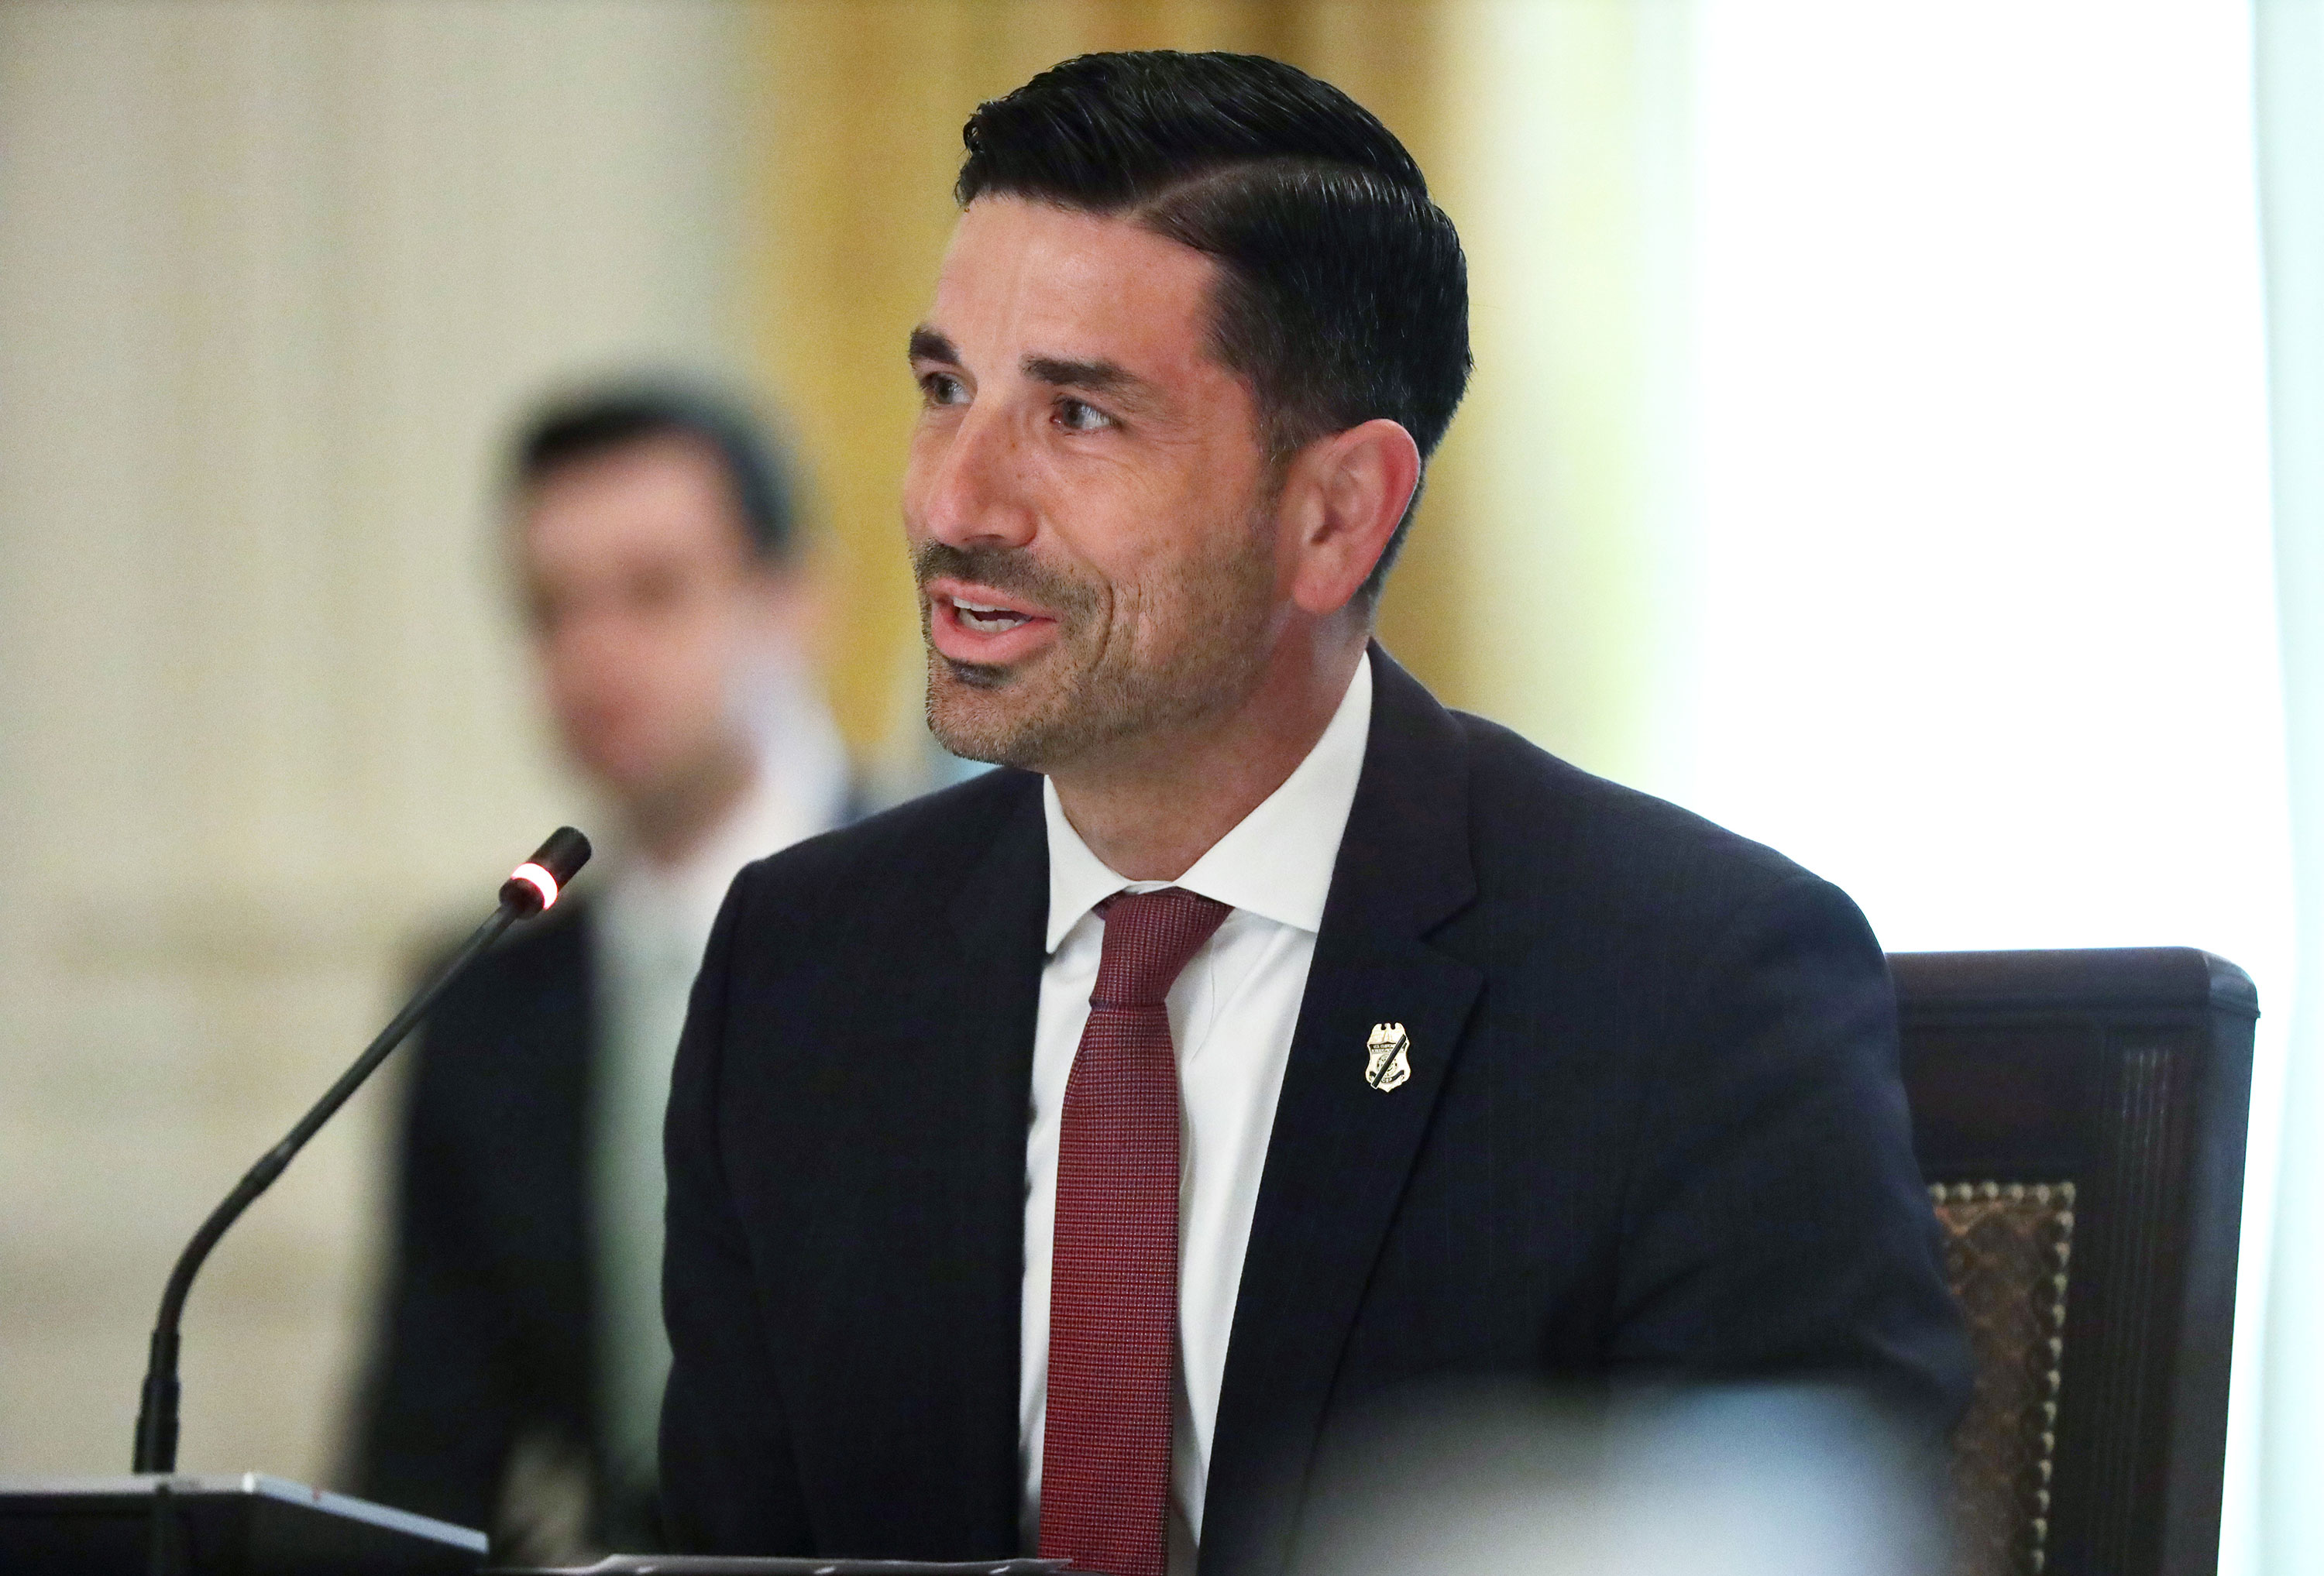 Acting U.S. Secretary of Homeland Security Chad Wolf on May 19